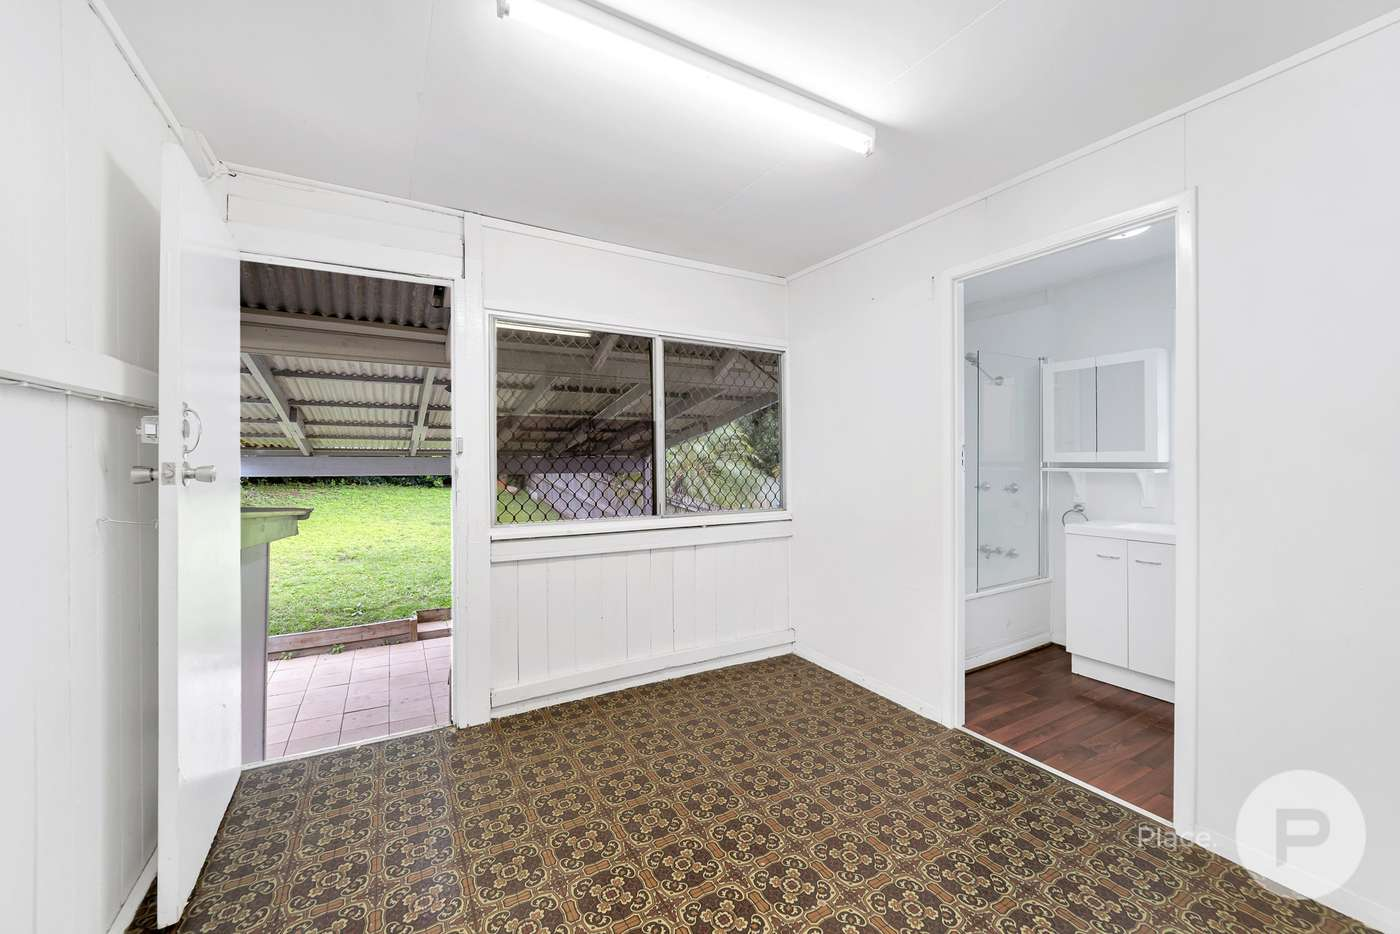 Seventh view of Homely house listing, 18 Grimes Street, Auchenflower QLD 4066